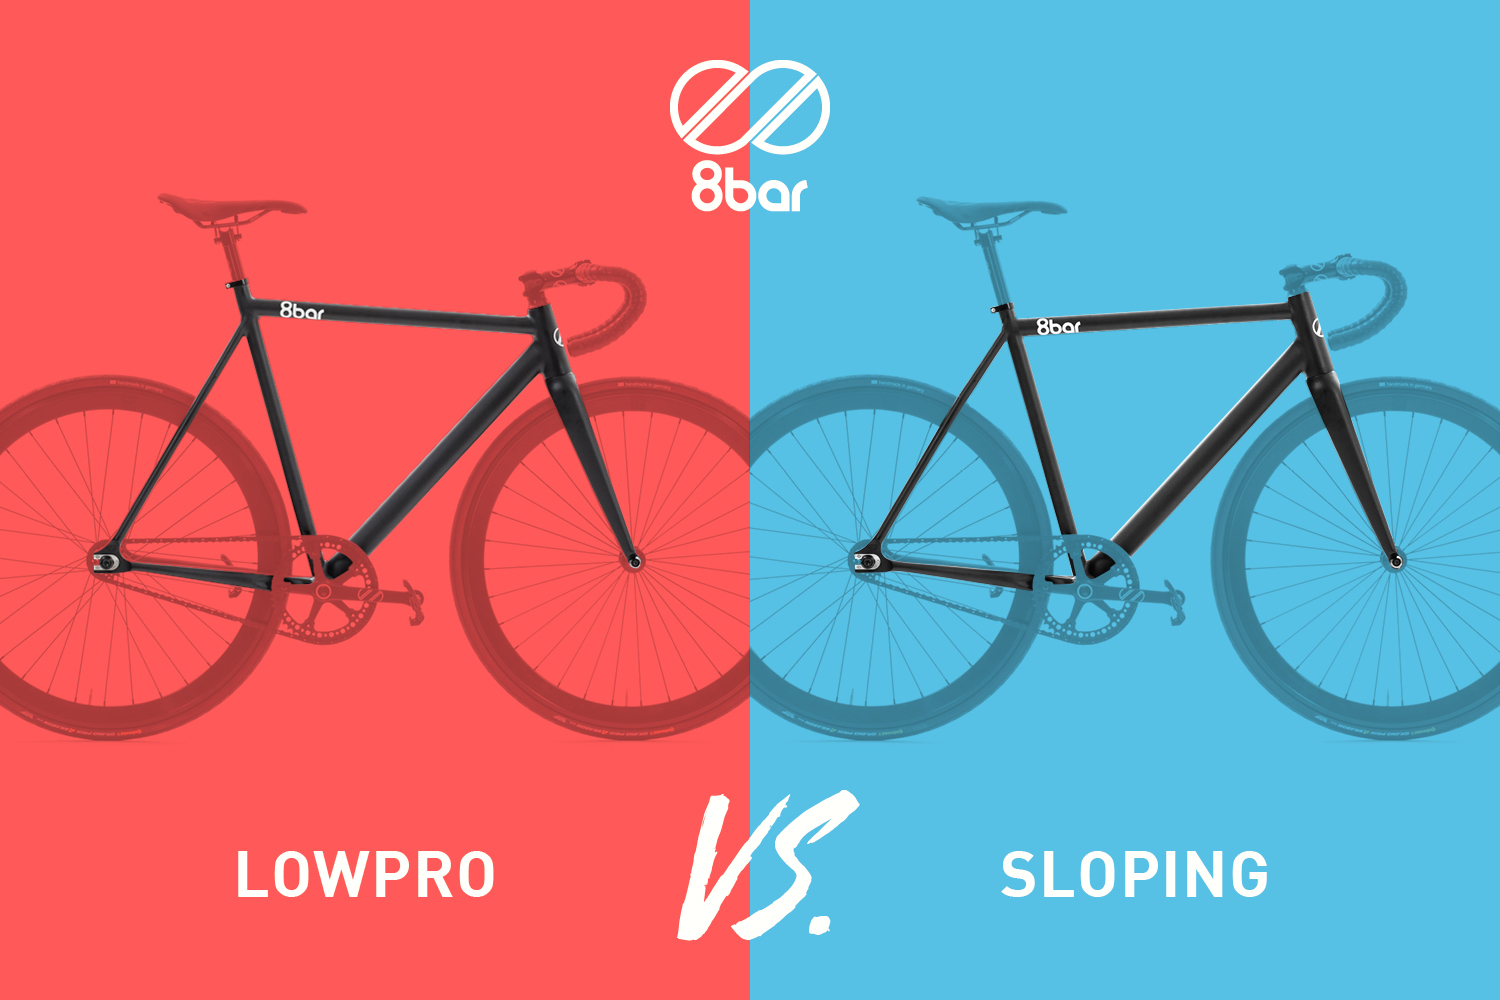 8bar umfrage 1500x1000px 1 - Poll: Modern sloping or aggressive low pro?